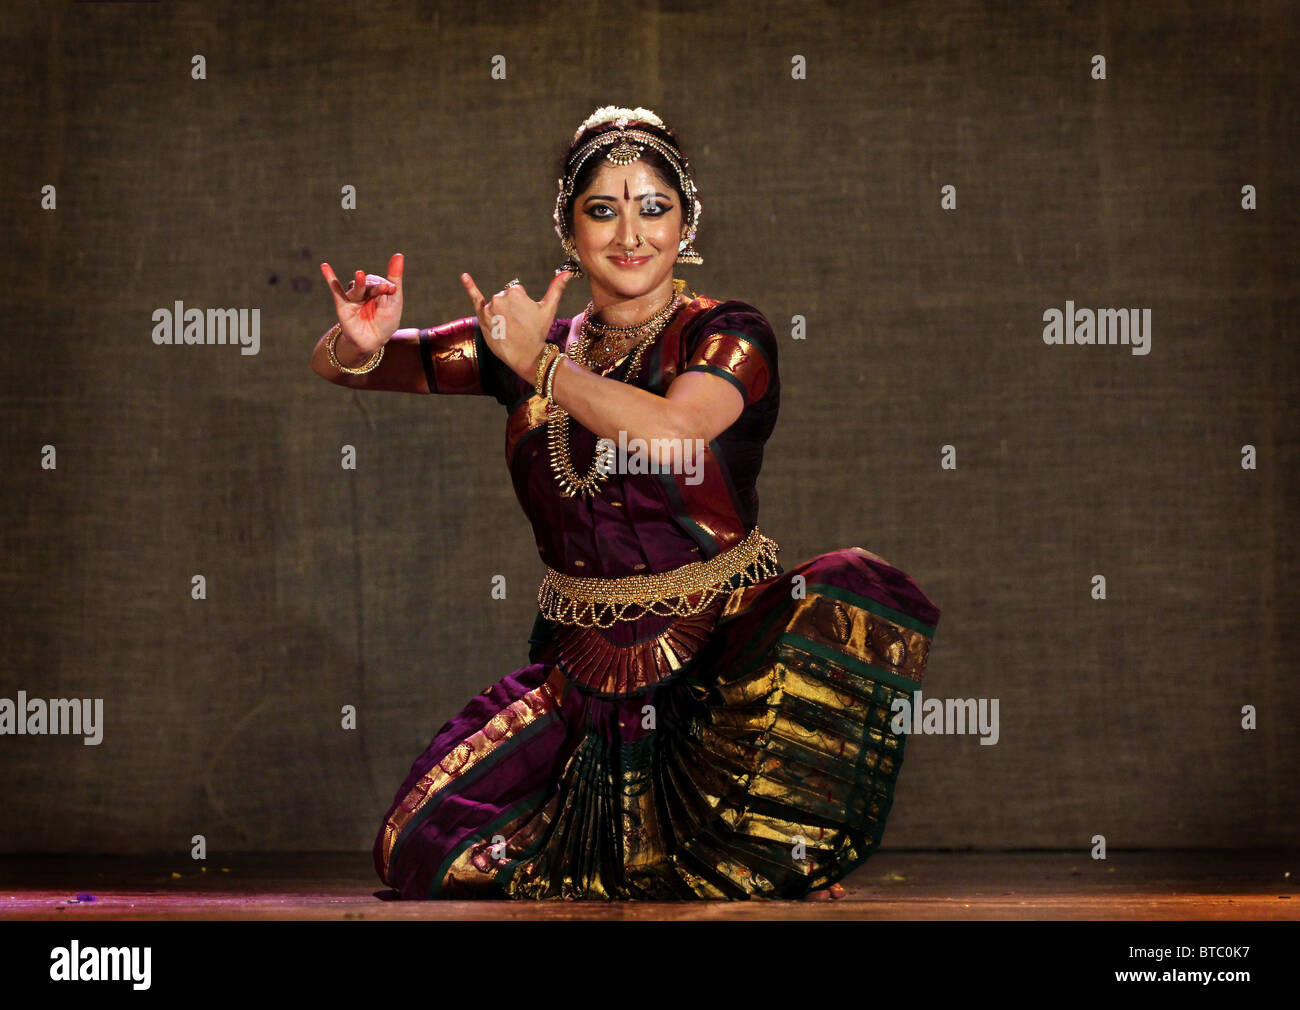 Bharatanatyam Classical Dance High Resolution Stock Photography And Images Alamy